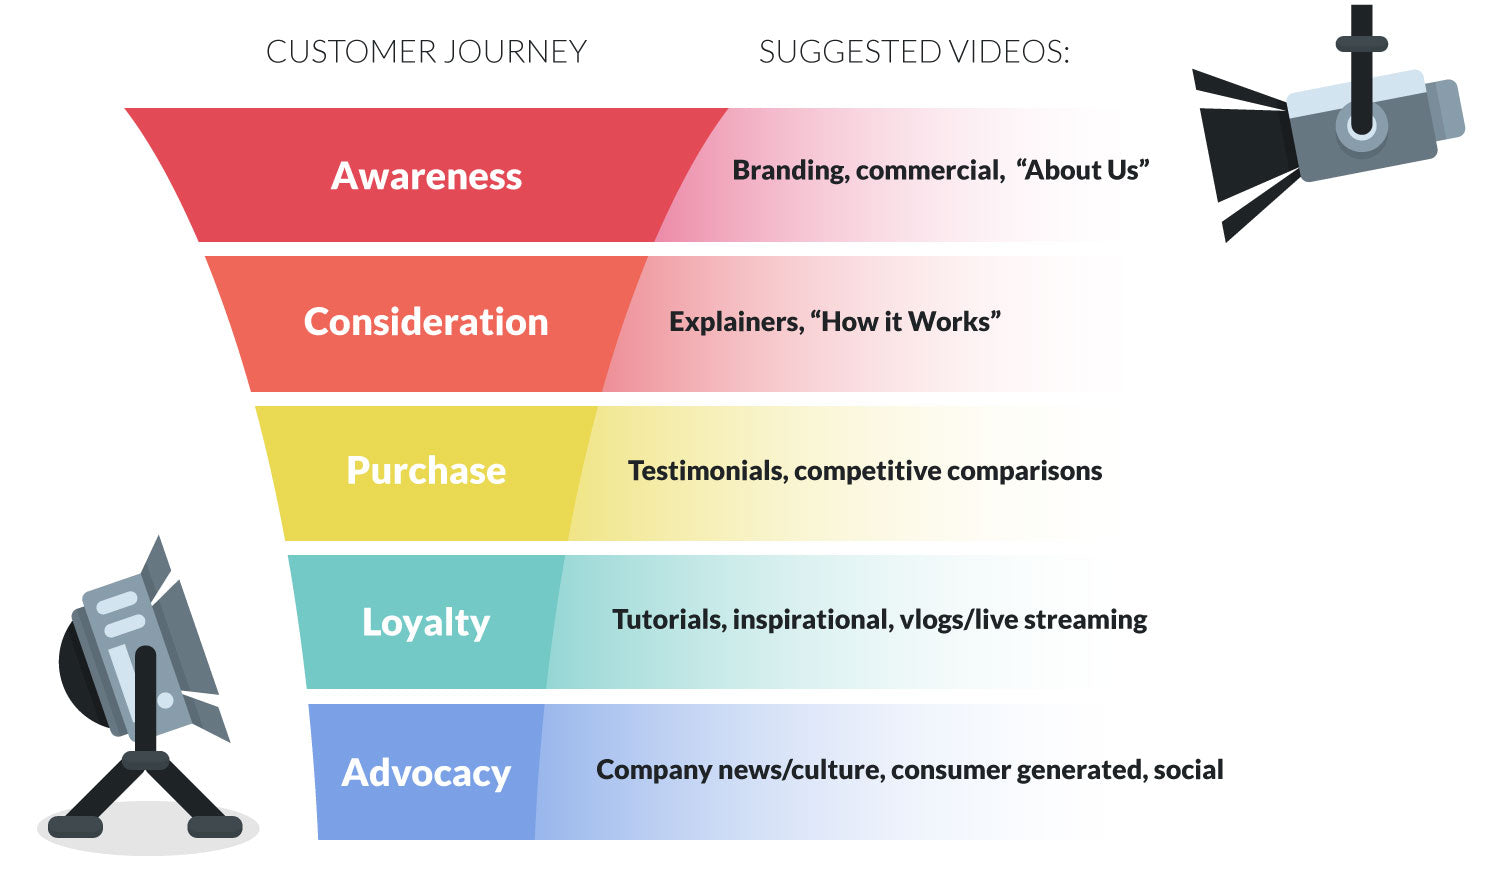 From Browse to Buy: How to Use Videos at Every Stage of the Customer ...